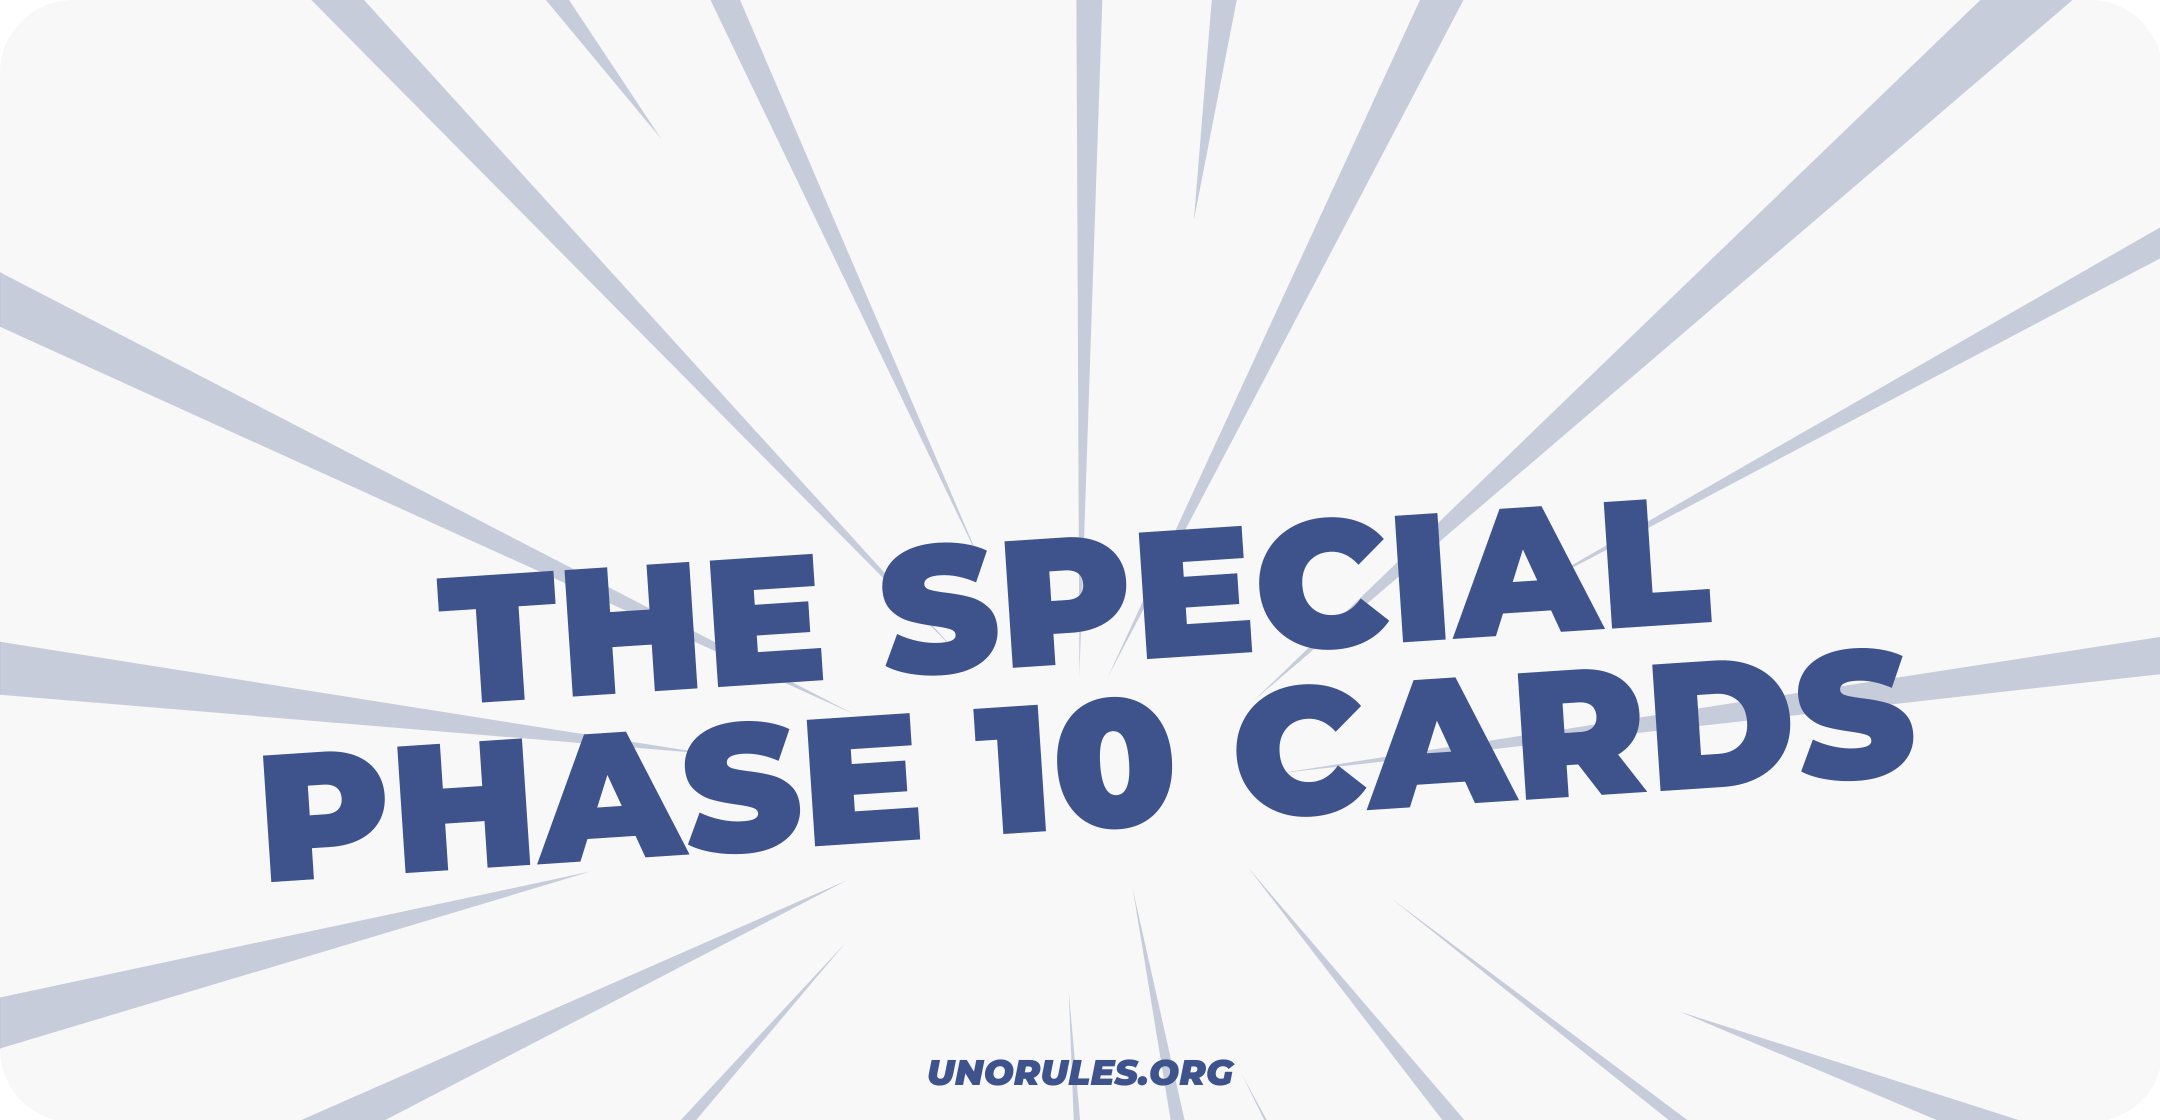 The special Phase 10 cards